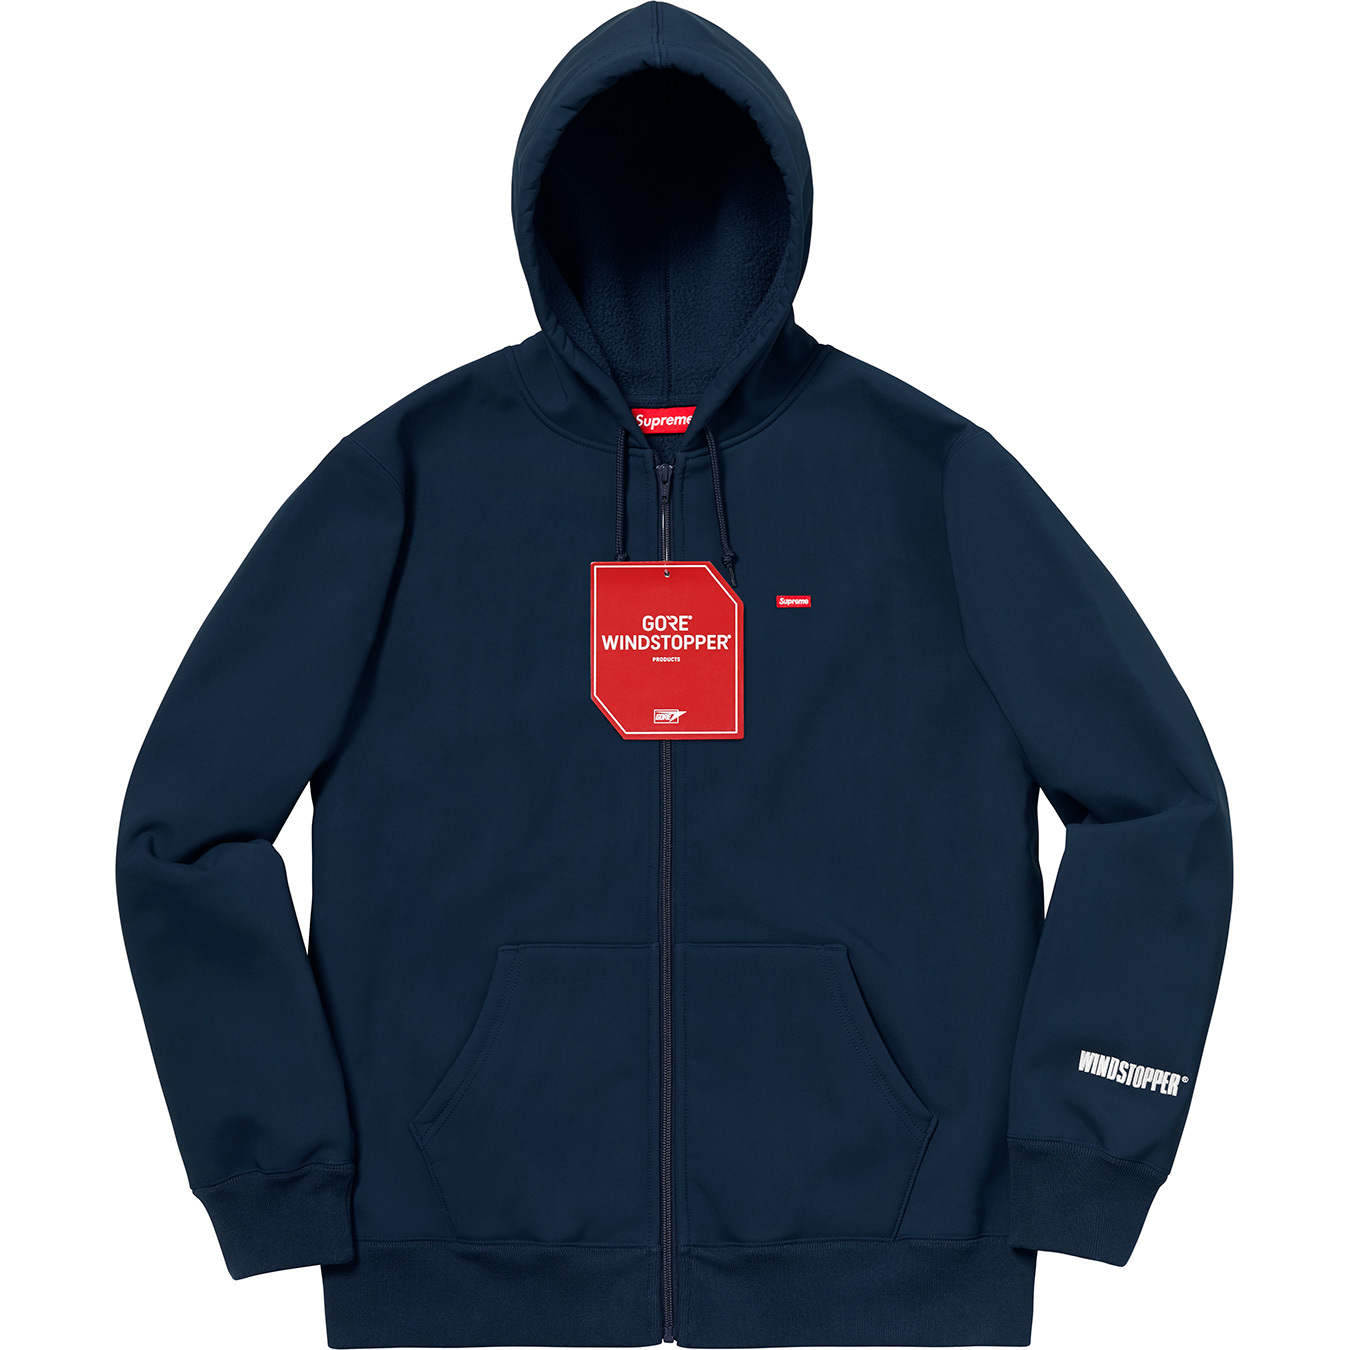 supreme-18aw-fall-winter-windstopper-zip-up-hooded-sweatshirt